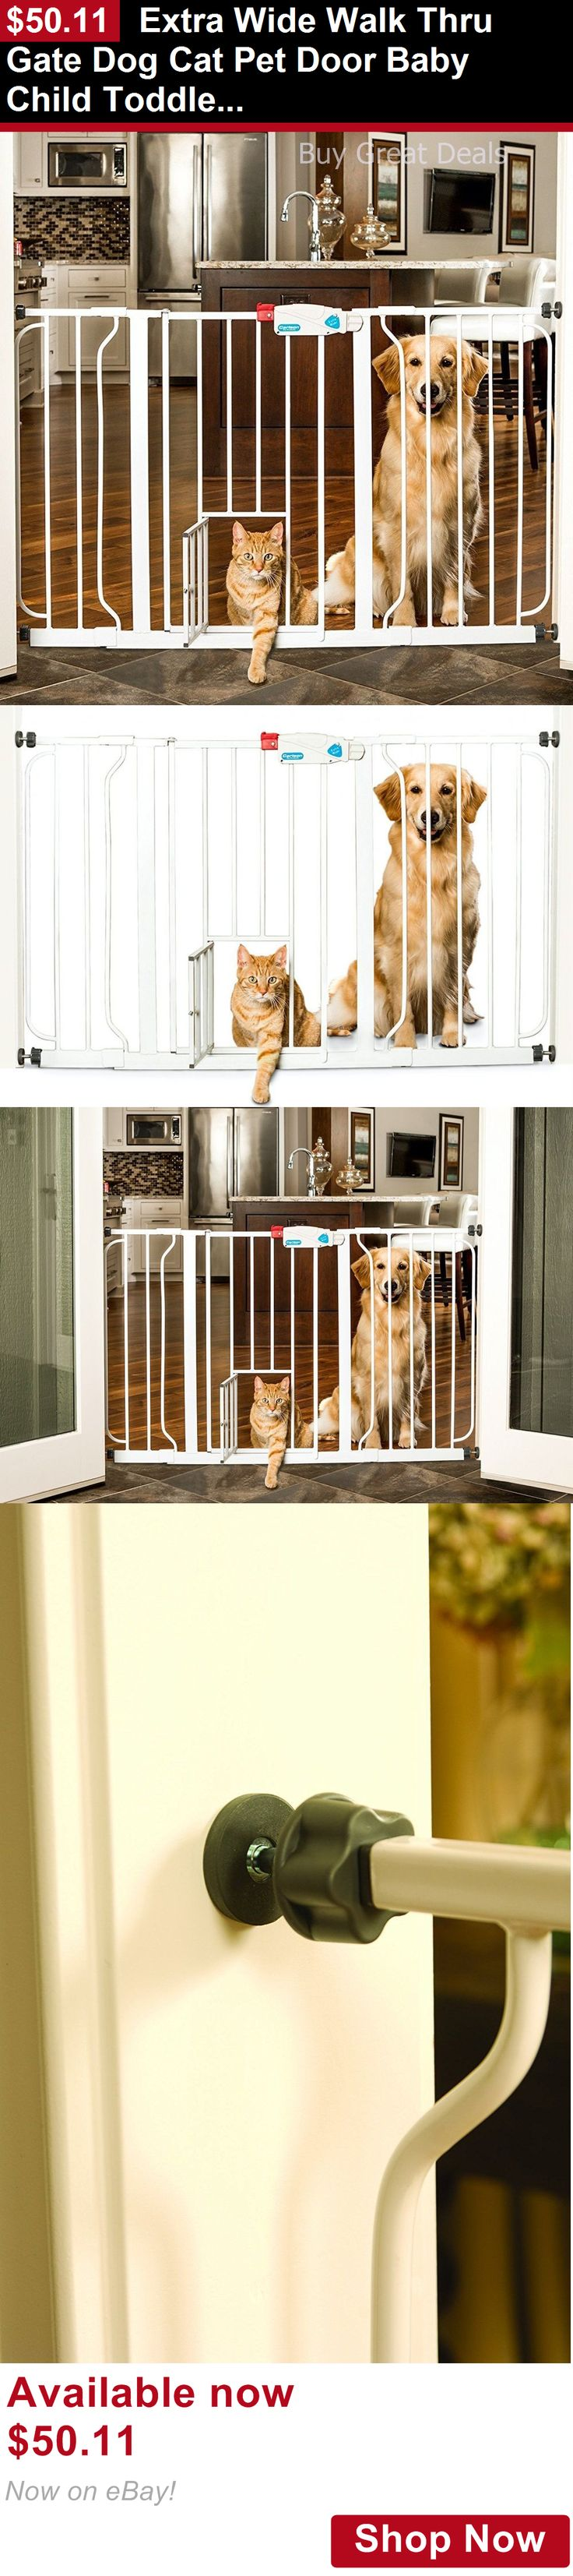 Baby Safety Gates: Extra Wide Walk Thru Gate Dog Cat Pet Door Baby Child Toddler Safety Steel White BUY IT NOW ONLY: $50.11